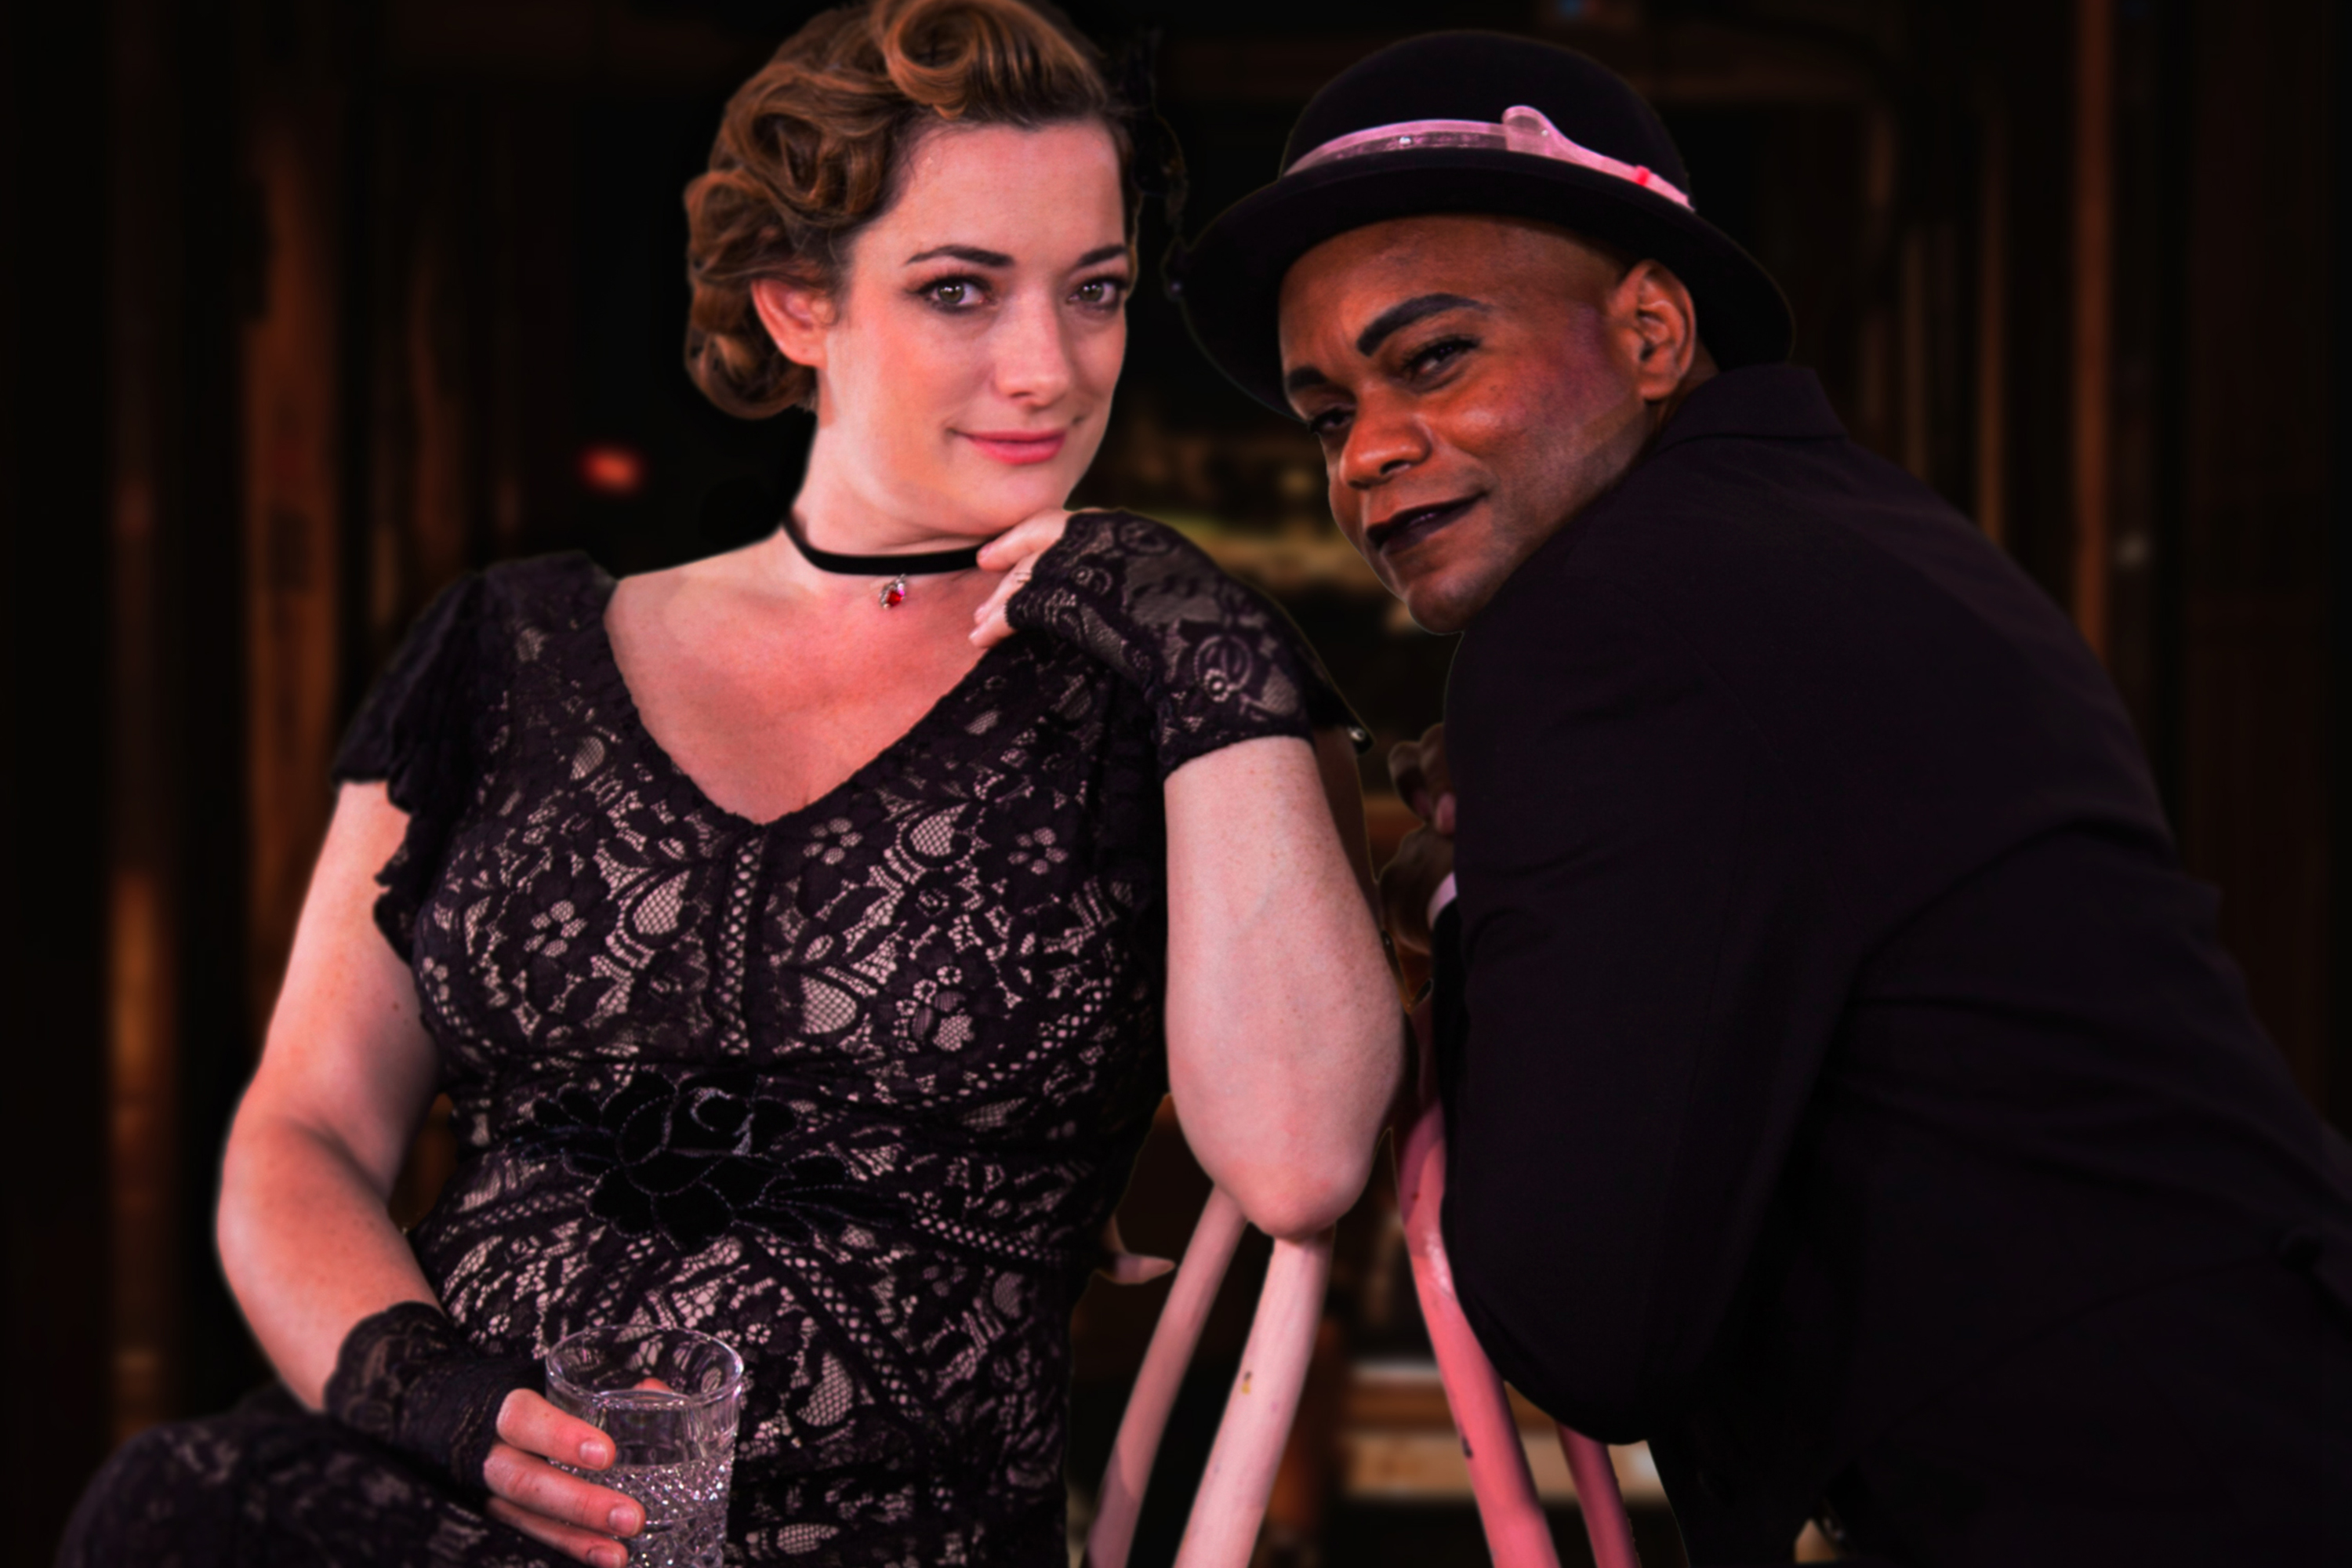 Olivier Award winner Laura Michelle Kelly, left, stars as Sally Bowles and Forrest McClendon as Emcee, in the Nutmeg Summer production of 'Cabaret,' on stage at Connecticut Repertory Theatre July 4-21. (Jean Samedi for UConn)